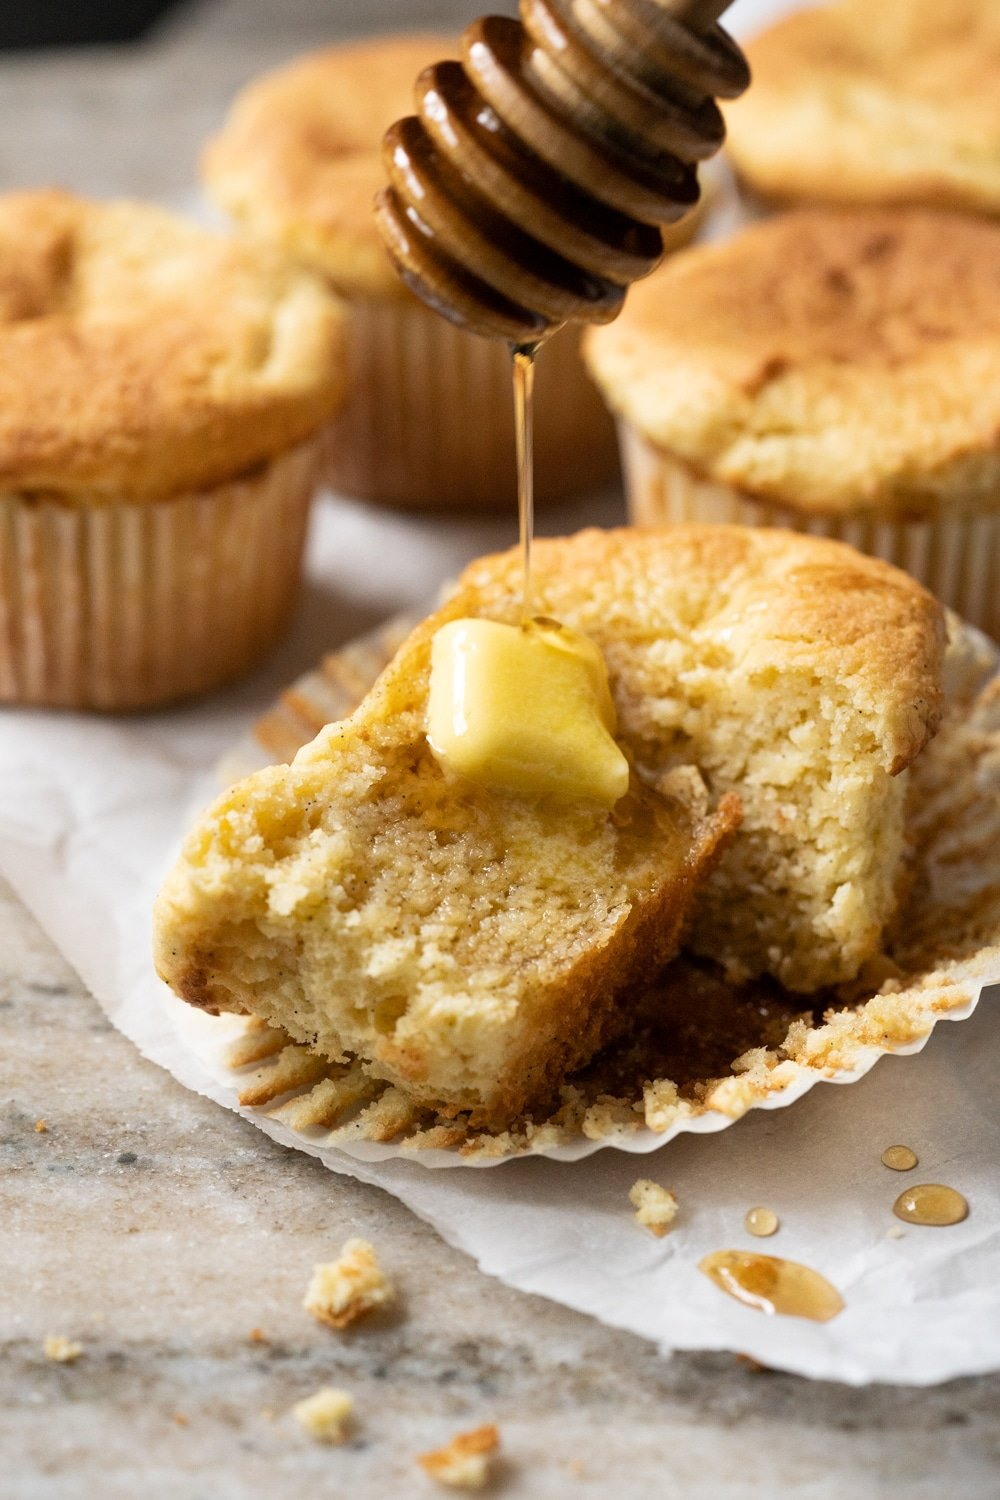 Drizzling keto maple syrup onto a halved low carb cornbread muffin